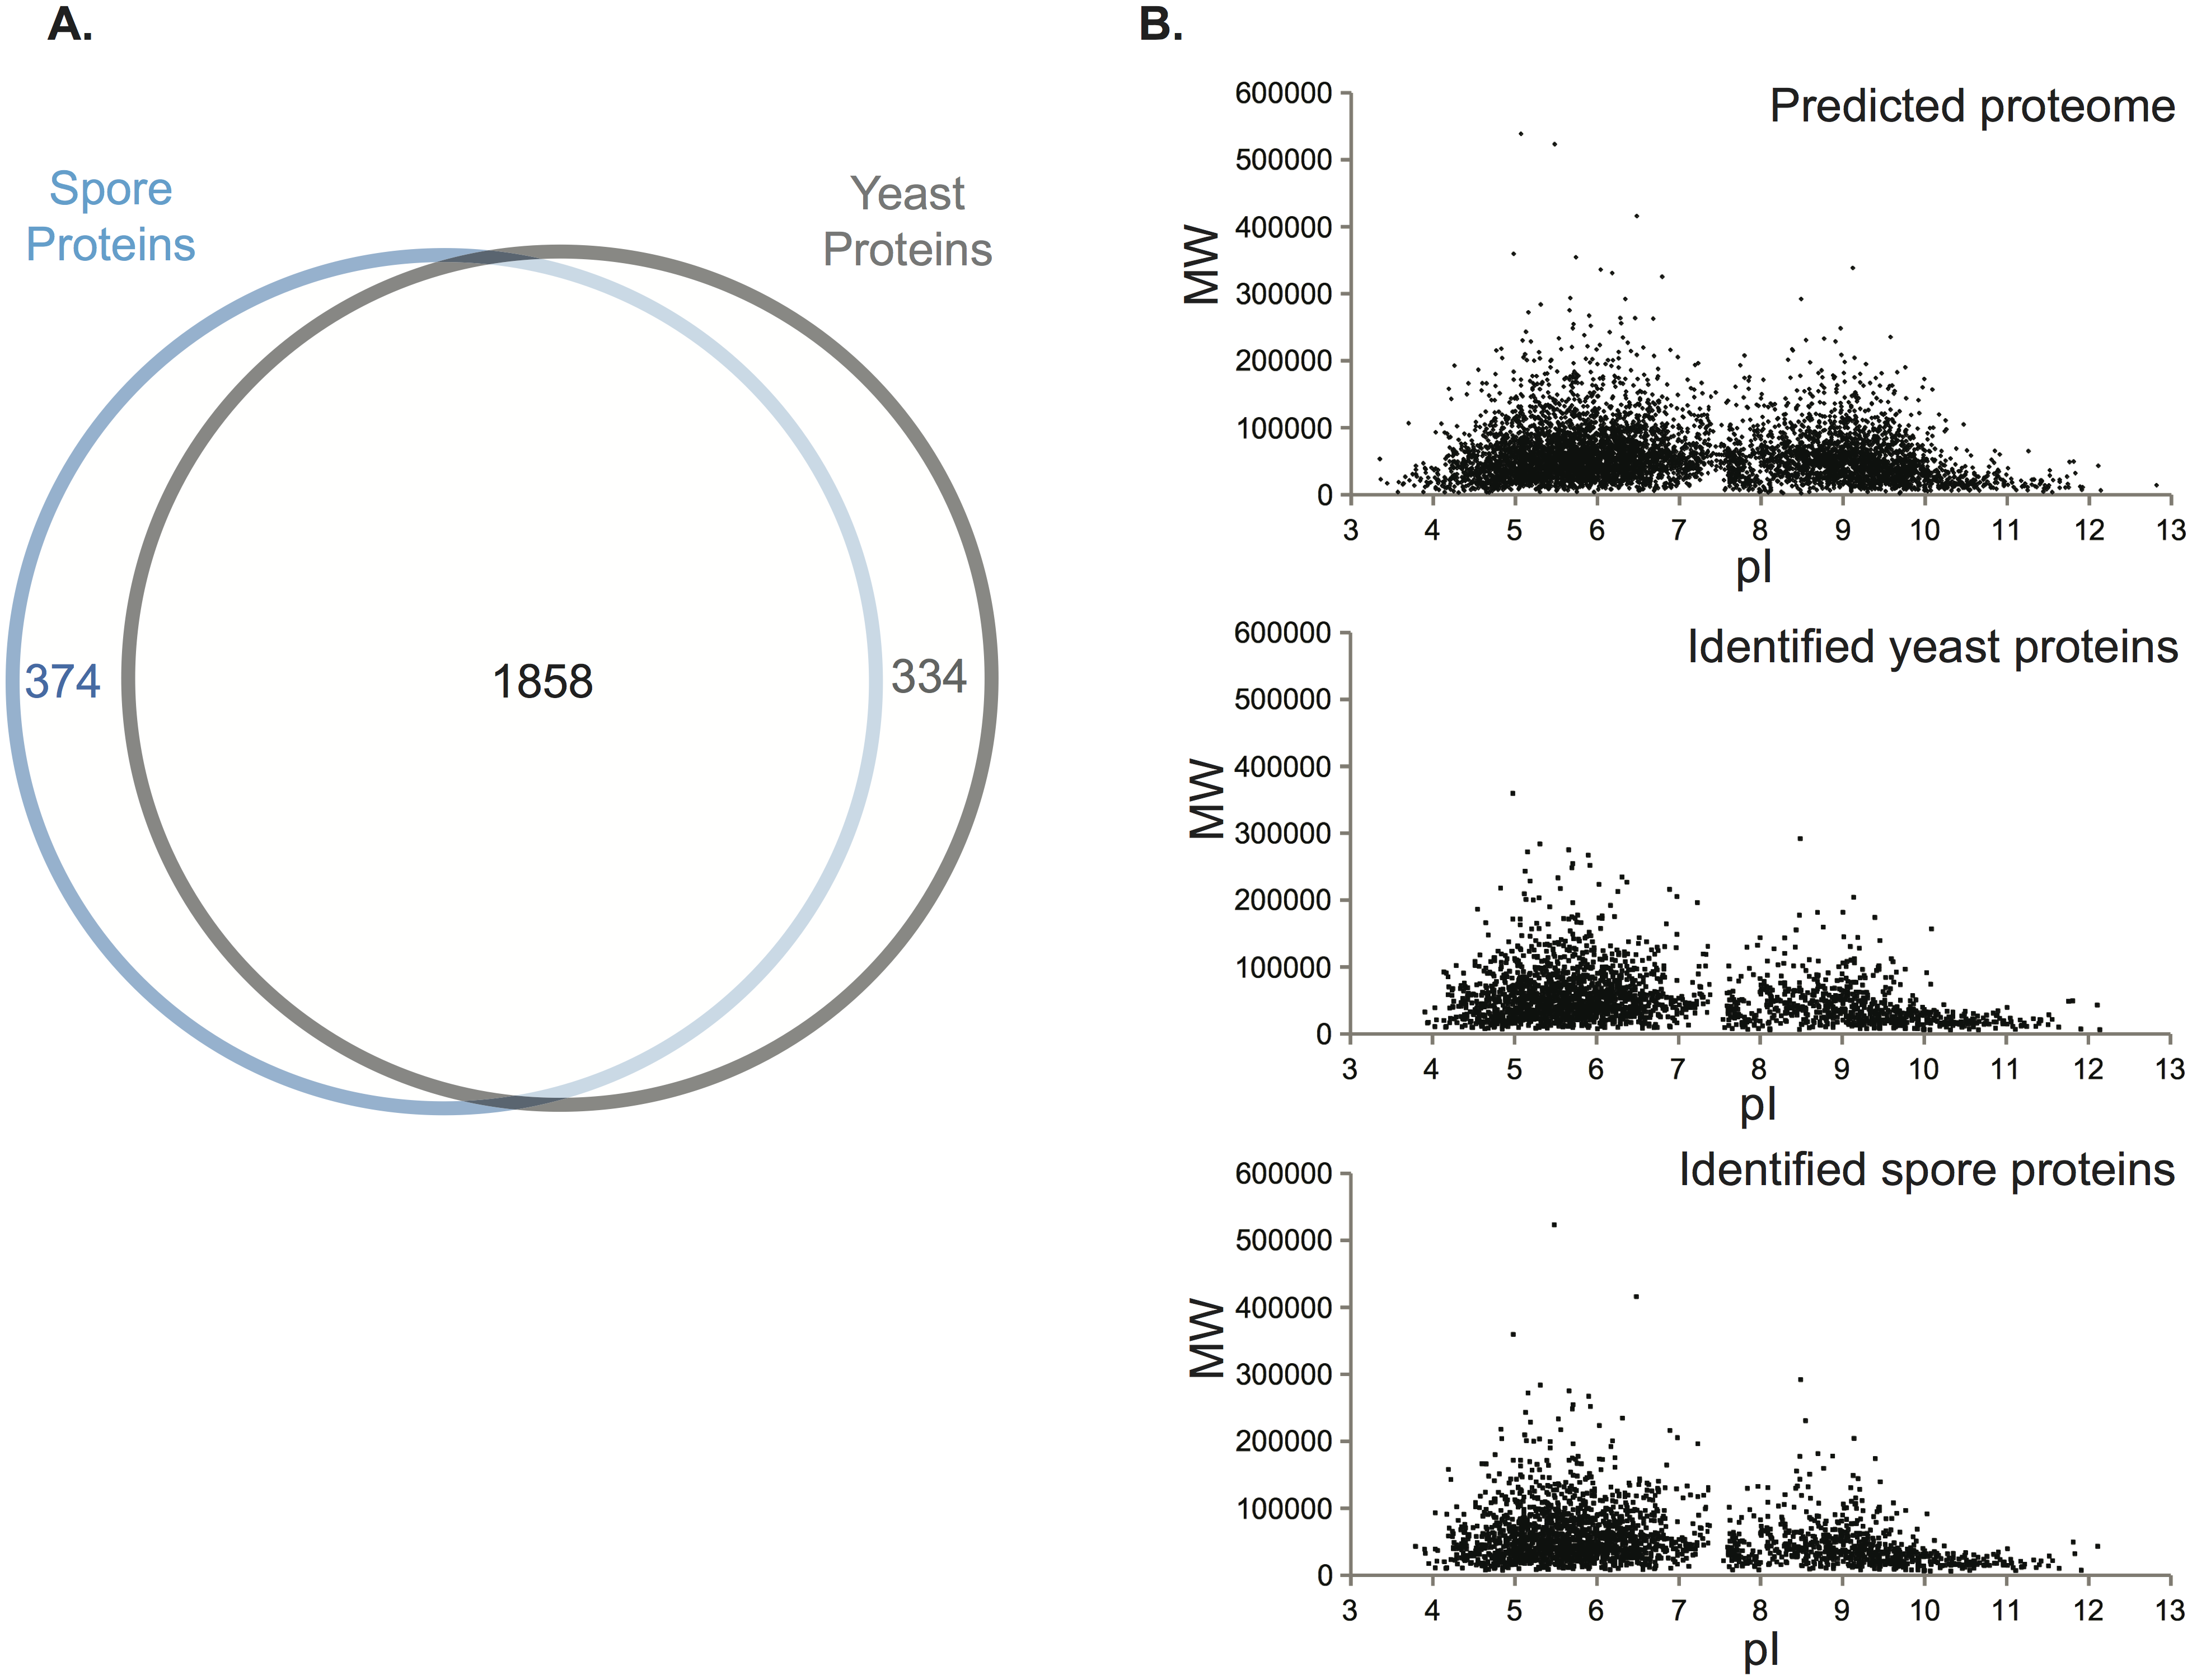 Assessment of the proteomic data.